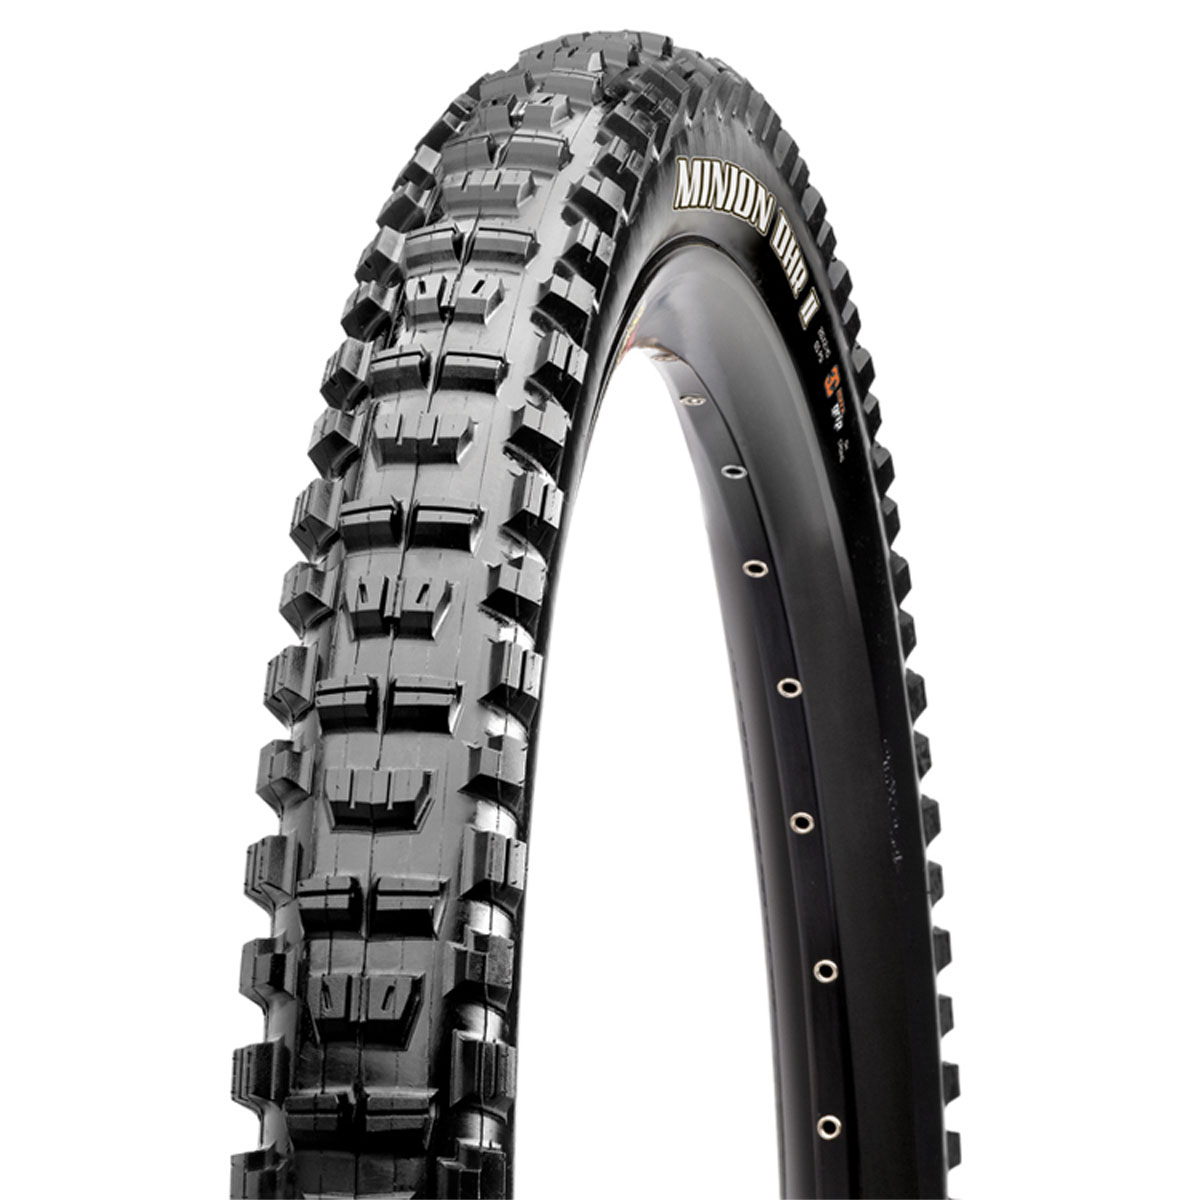 Maxxis Minion DHR II ST Dual Ply Wire Bead Downhill Bicycle Tire